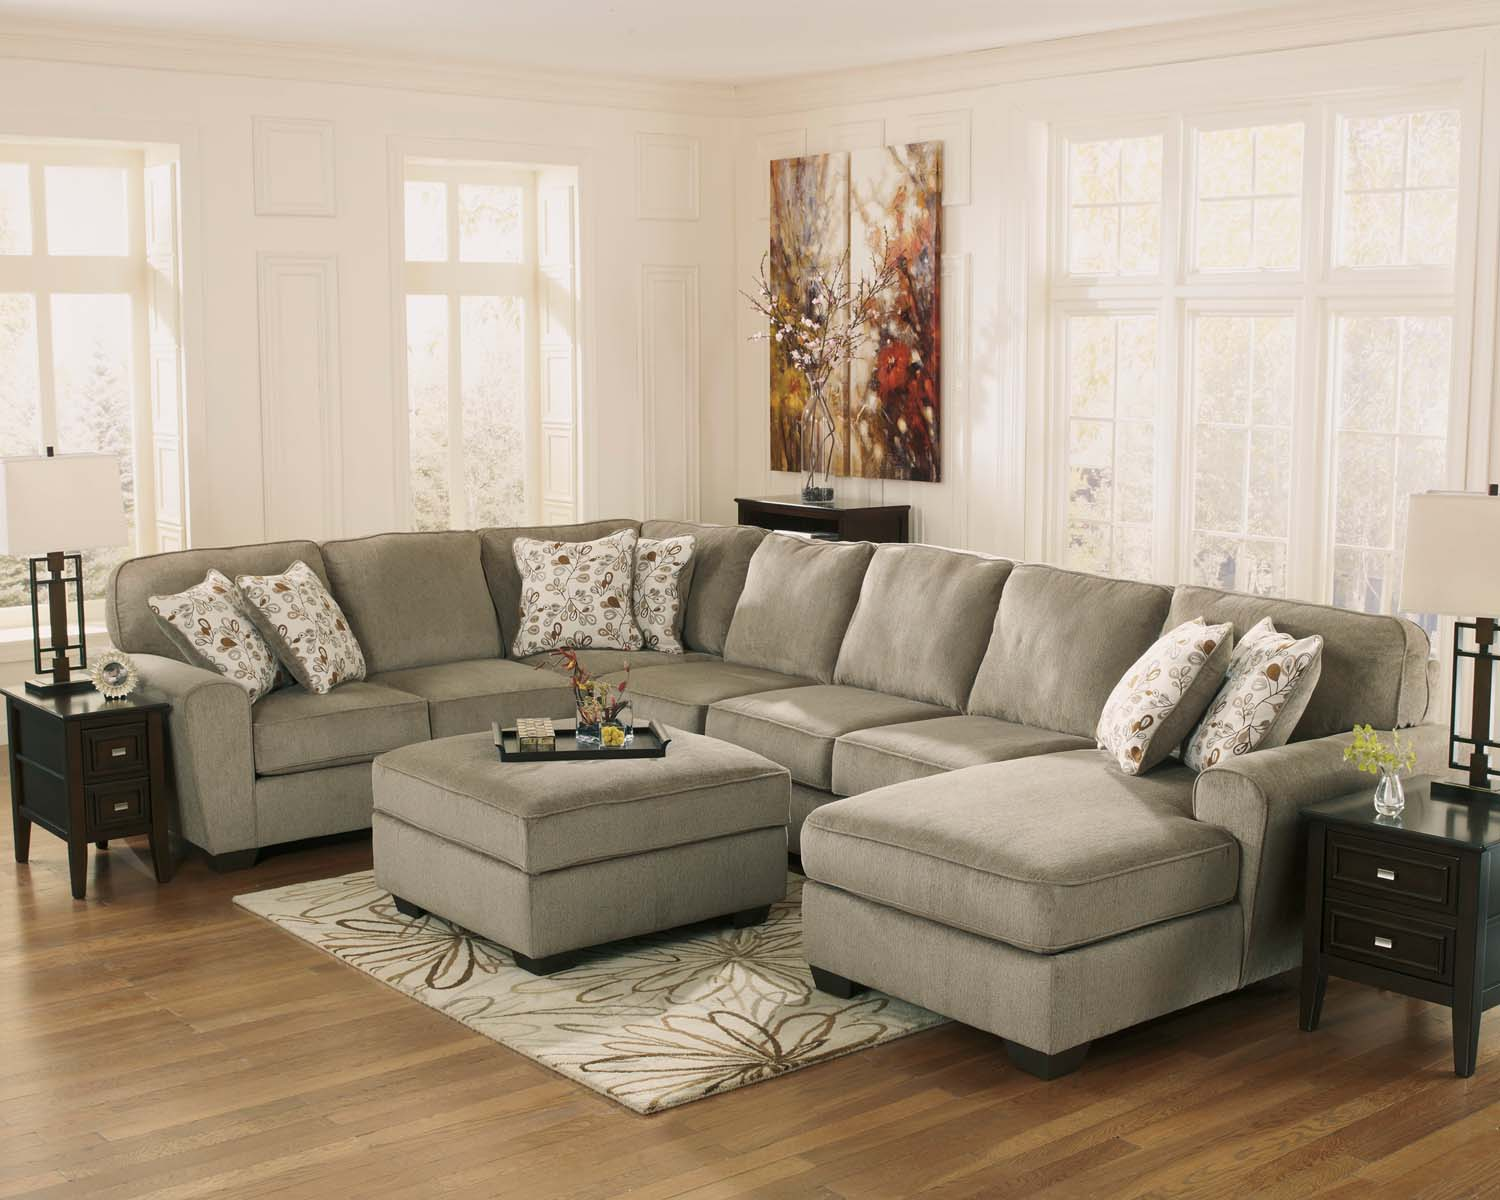 12900S2 in by Ashley Furniture in Sulphur, LA - Patola Park - Patina 2 Piece Sectional